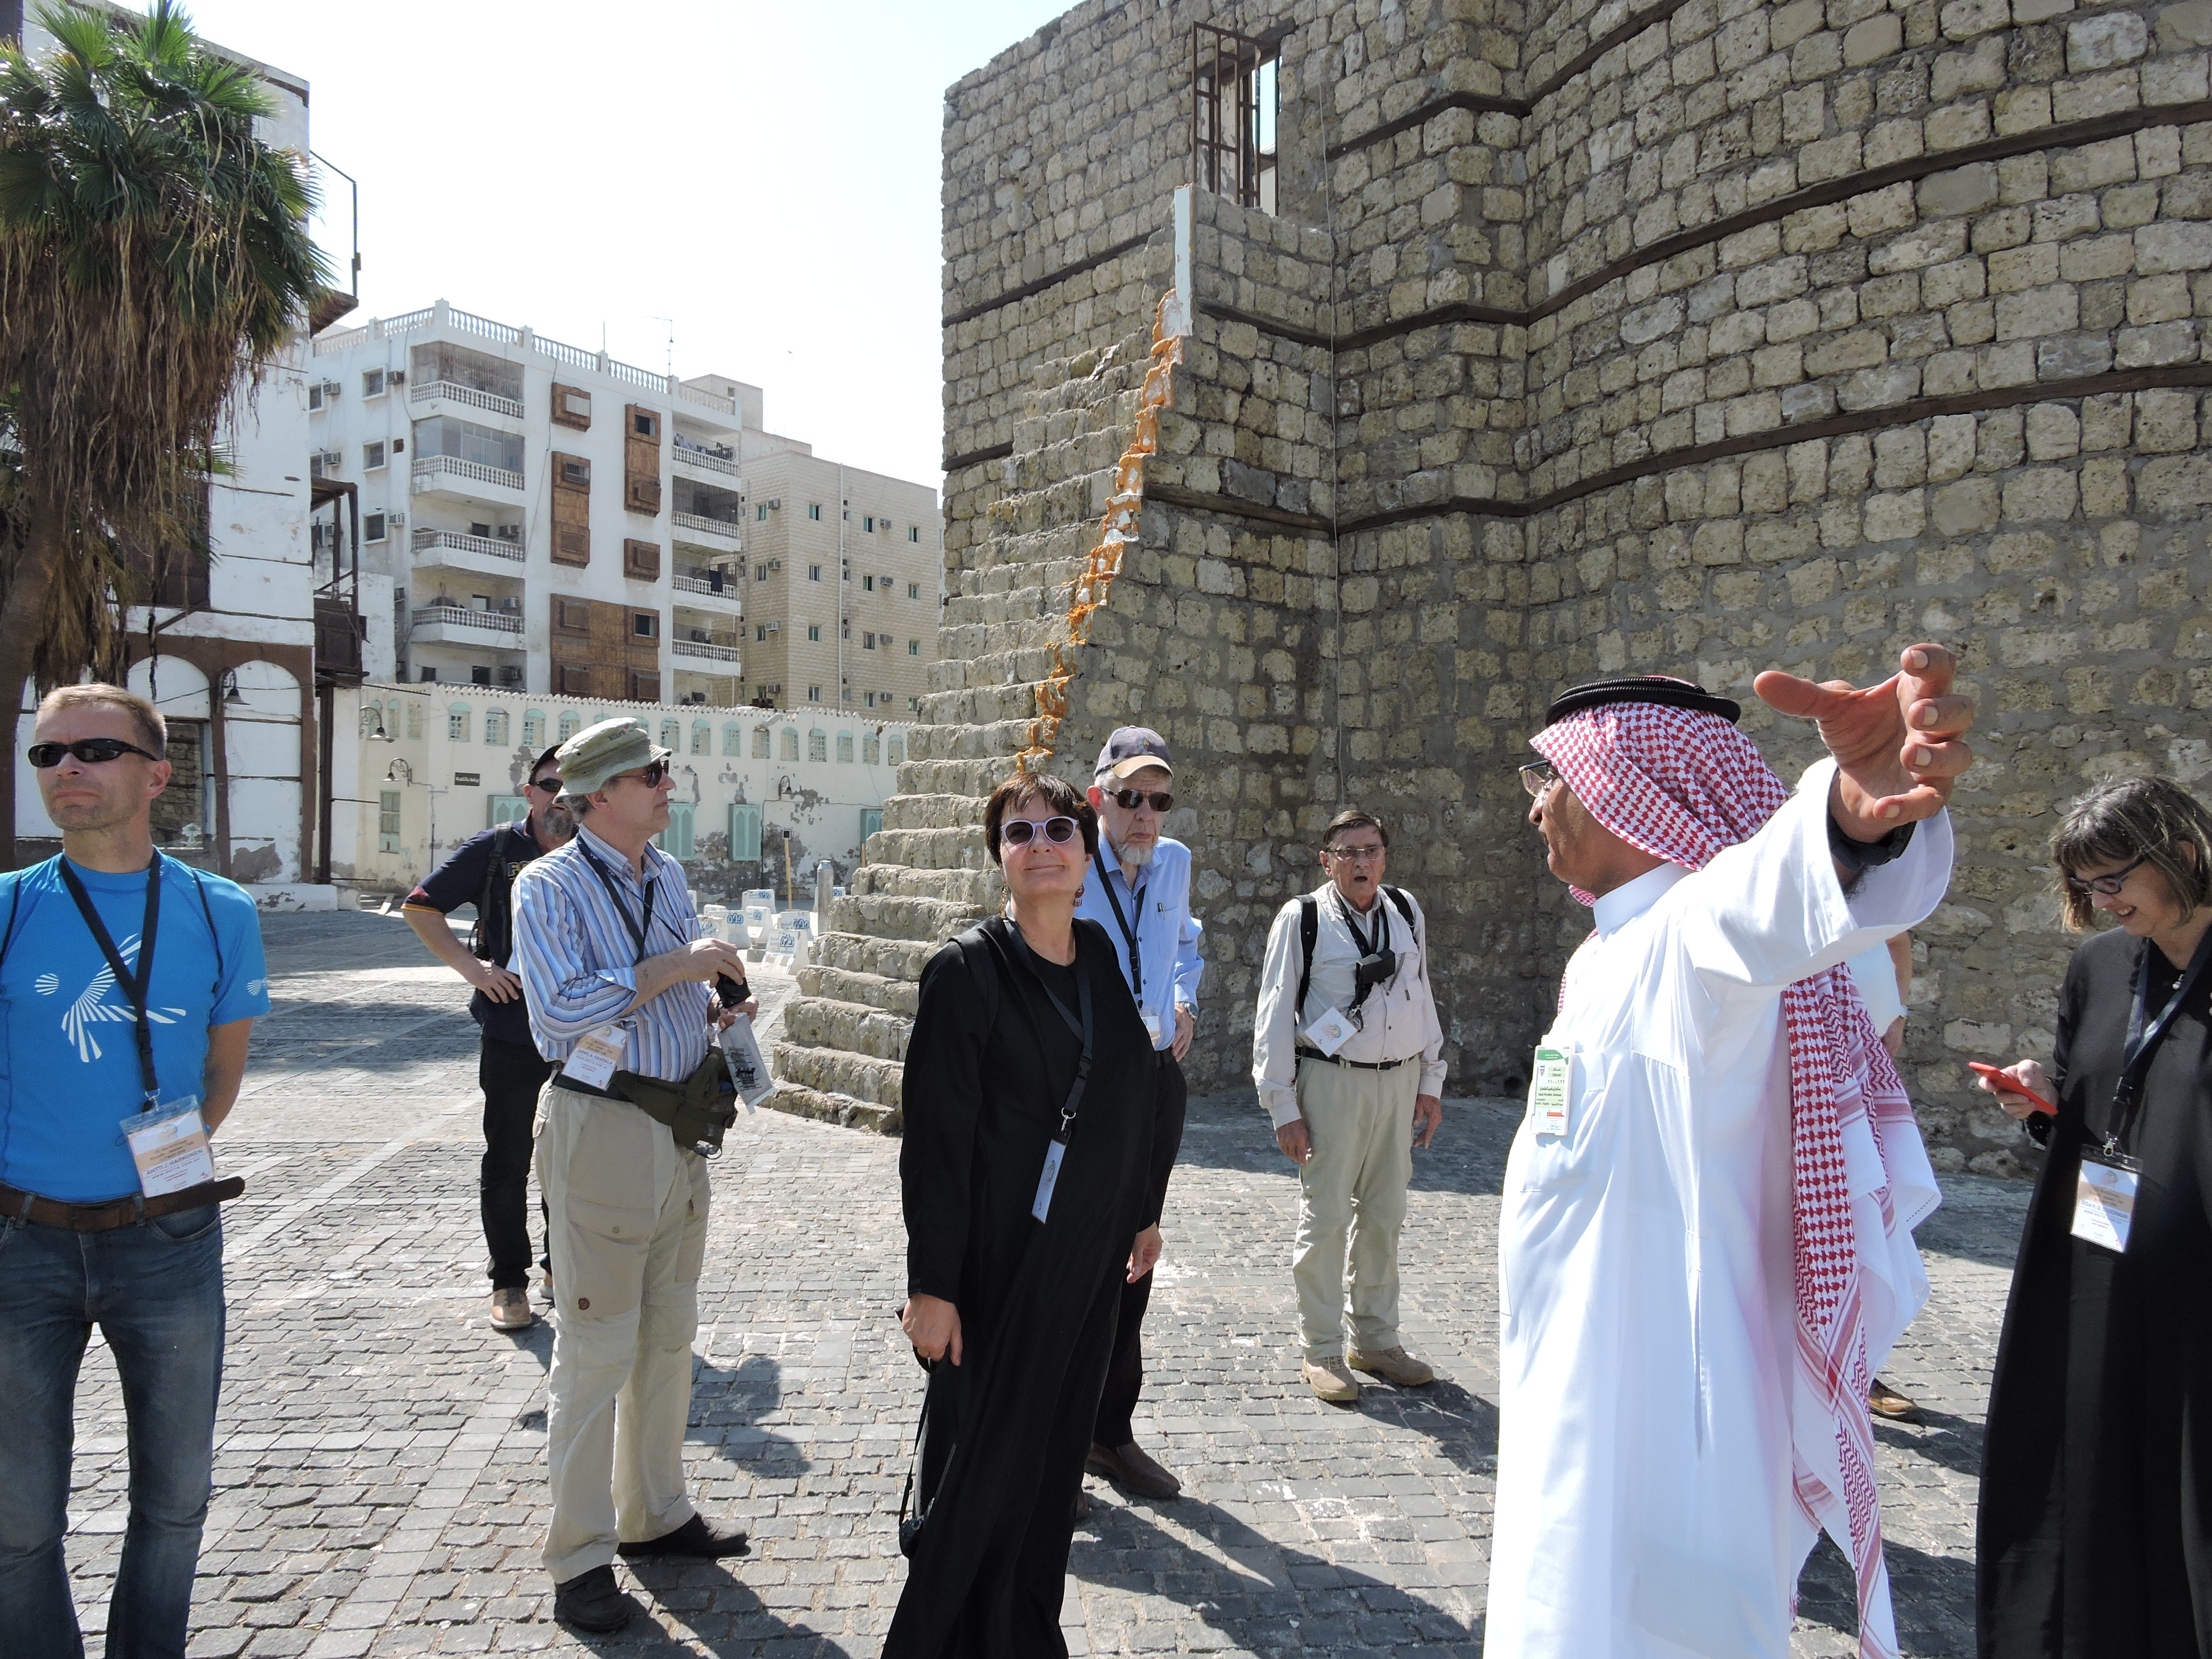 Jeddah Historical Tour for 3 persons